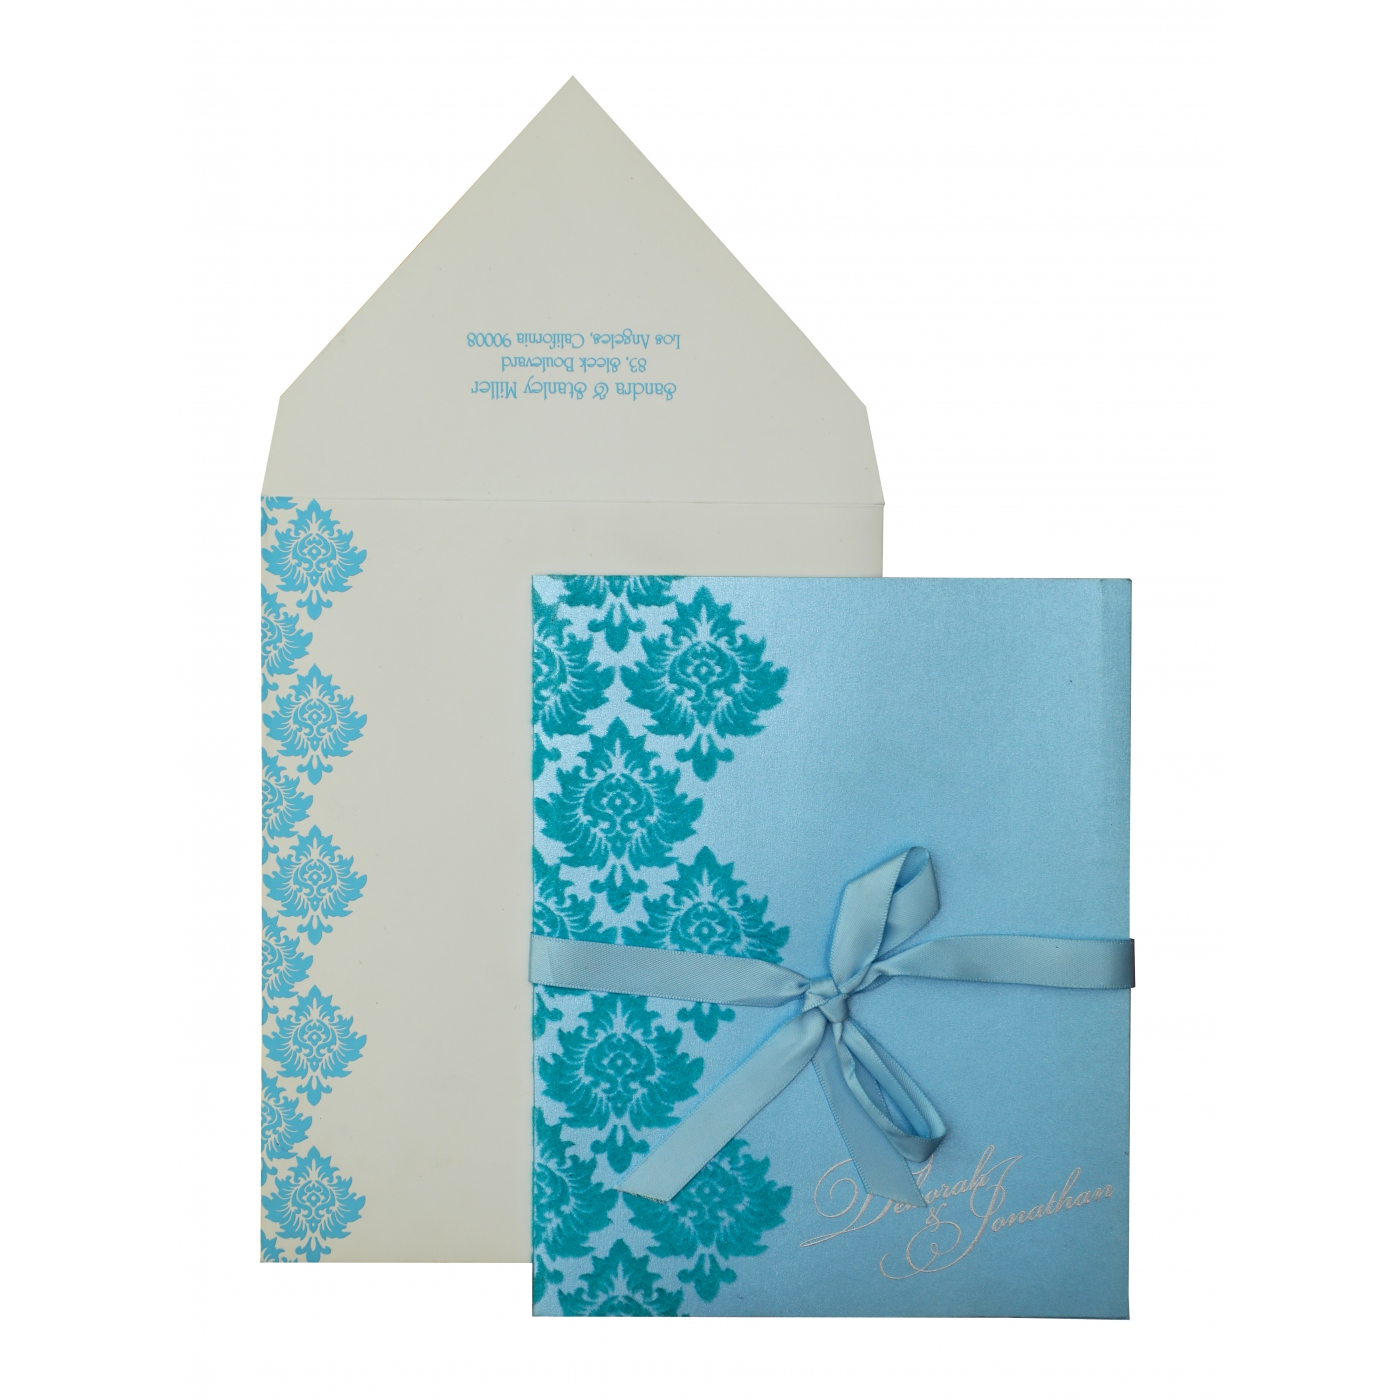 TURQUOISE SHIMMERY SCREEN PRINTED WEDDING INVITATION : AW-835 - A2zWeddingCards